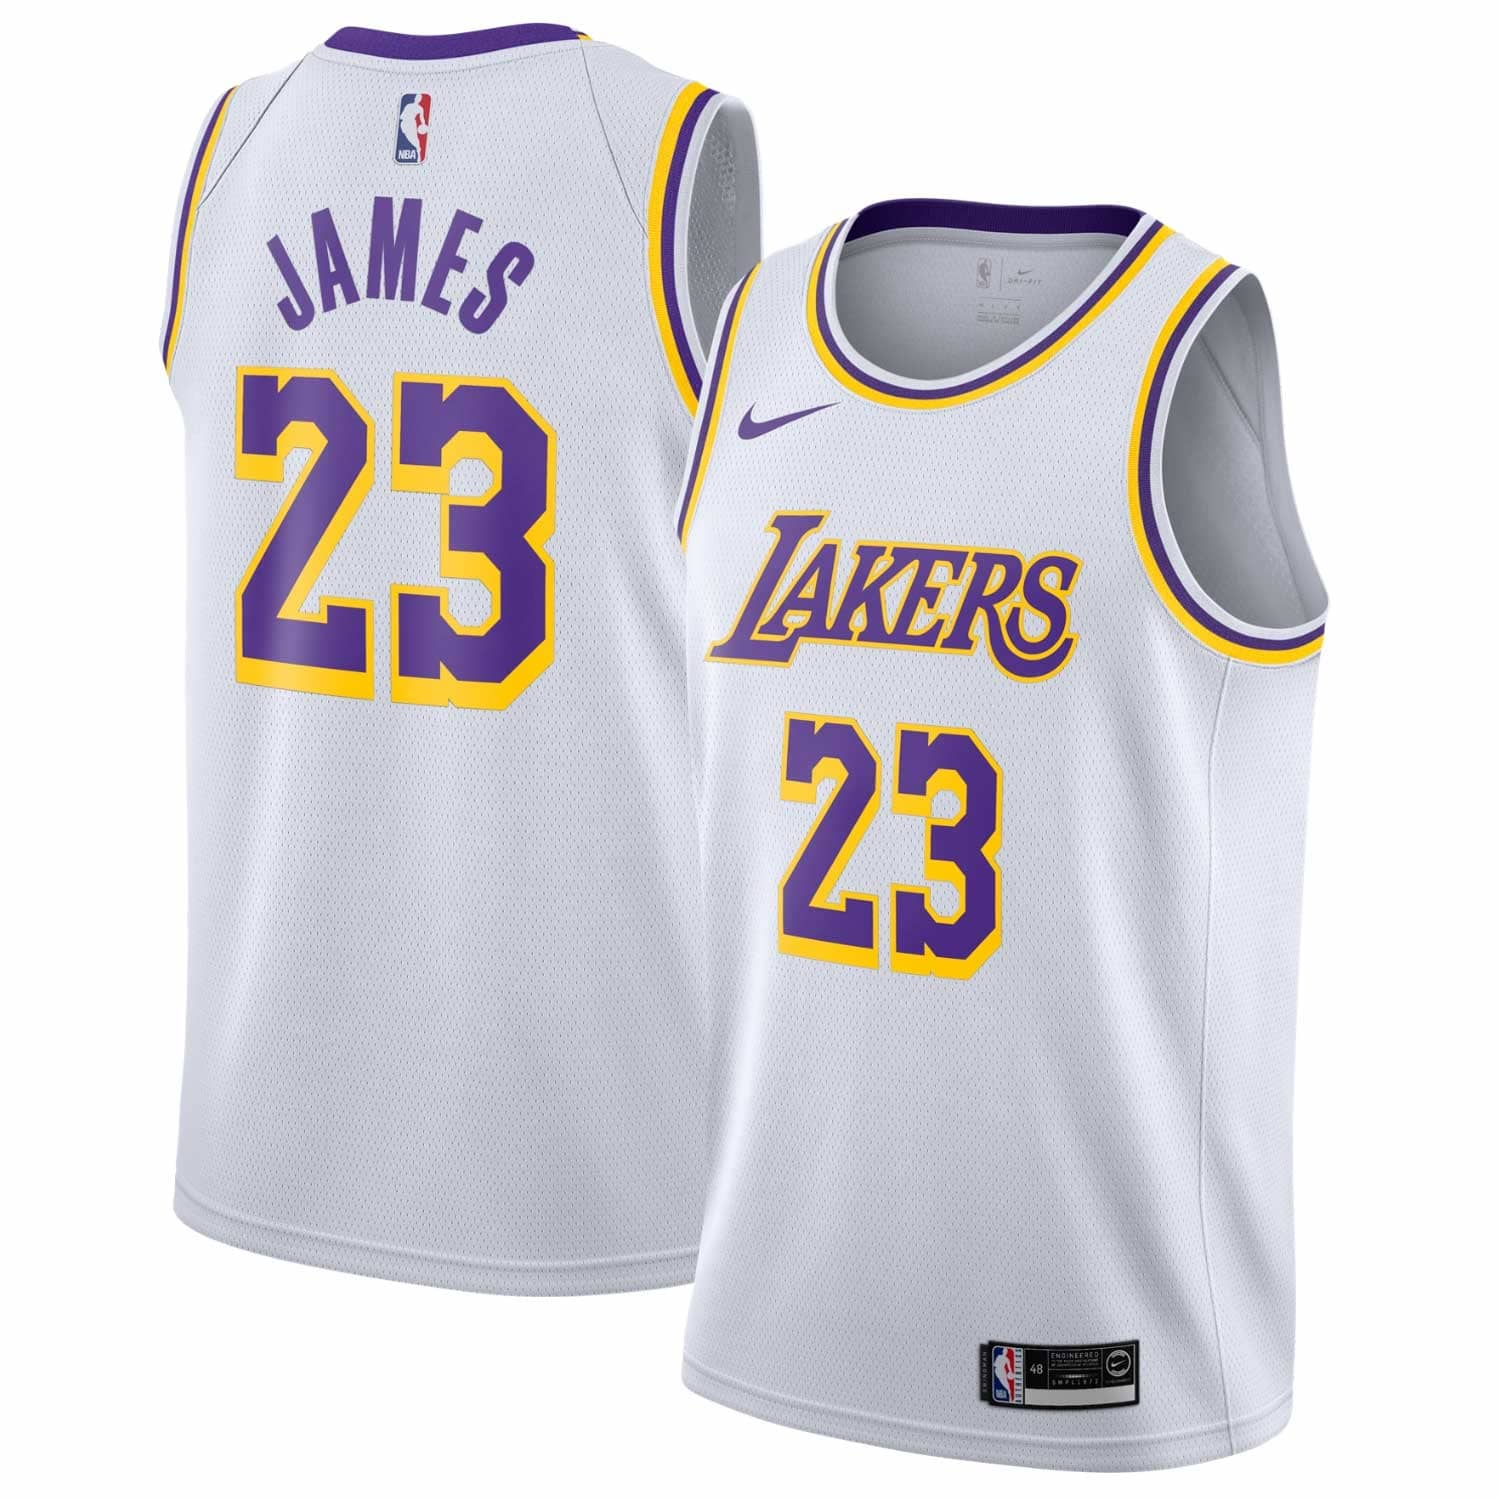 33b1d16c620 Nike LeBron James  23 Los Angeles Lakers Association Swingman NBA Jersey  White